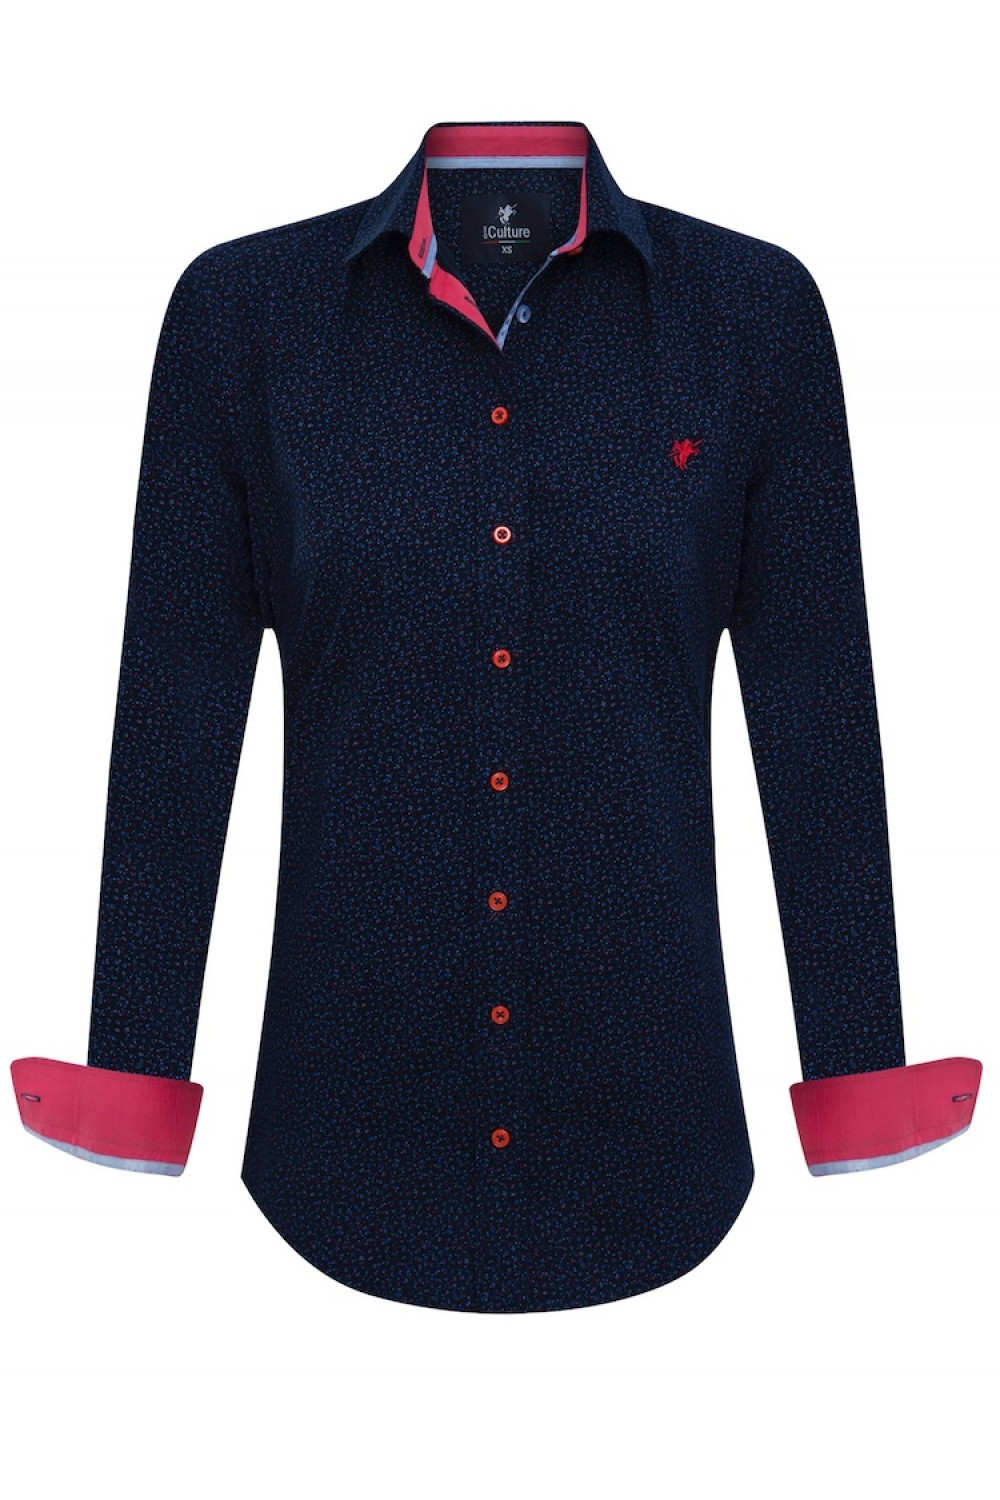 Women's Blouse Navy-Royal Flower Pattern Cotton